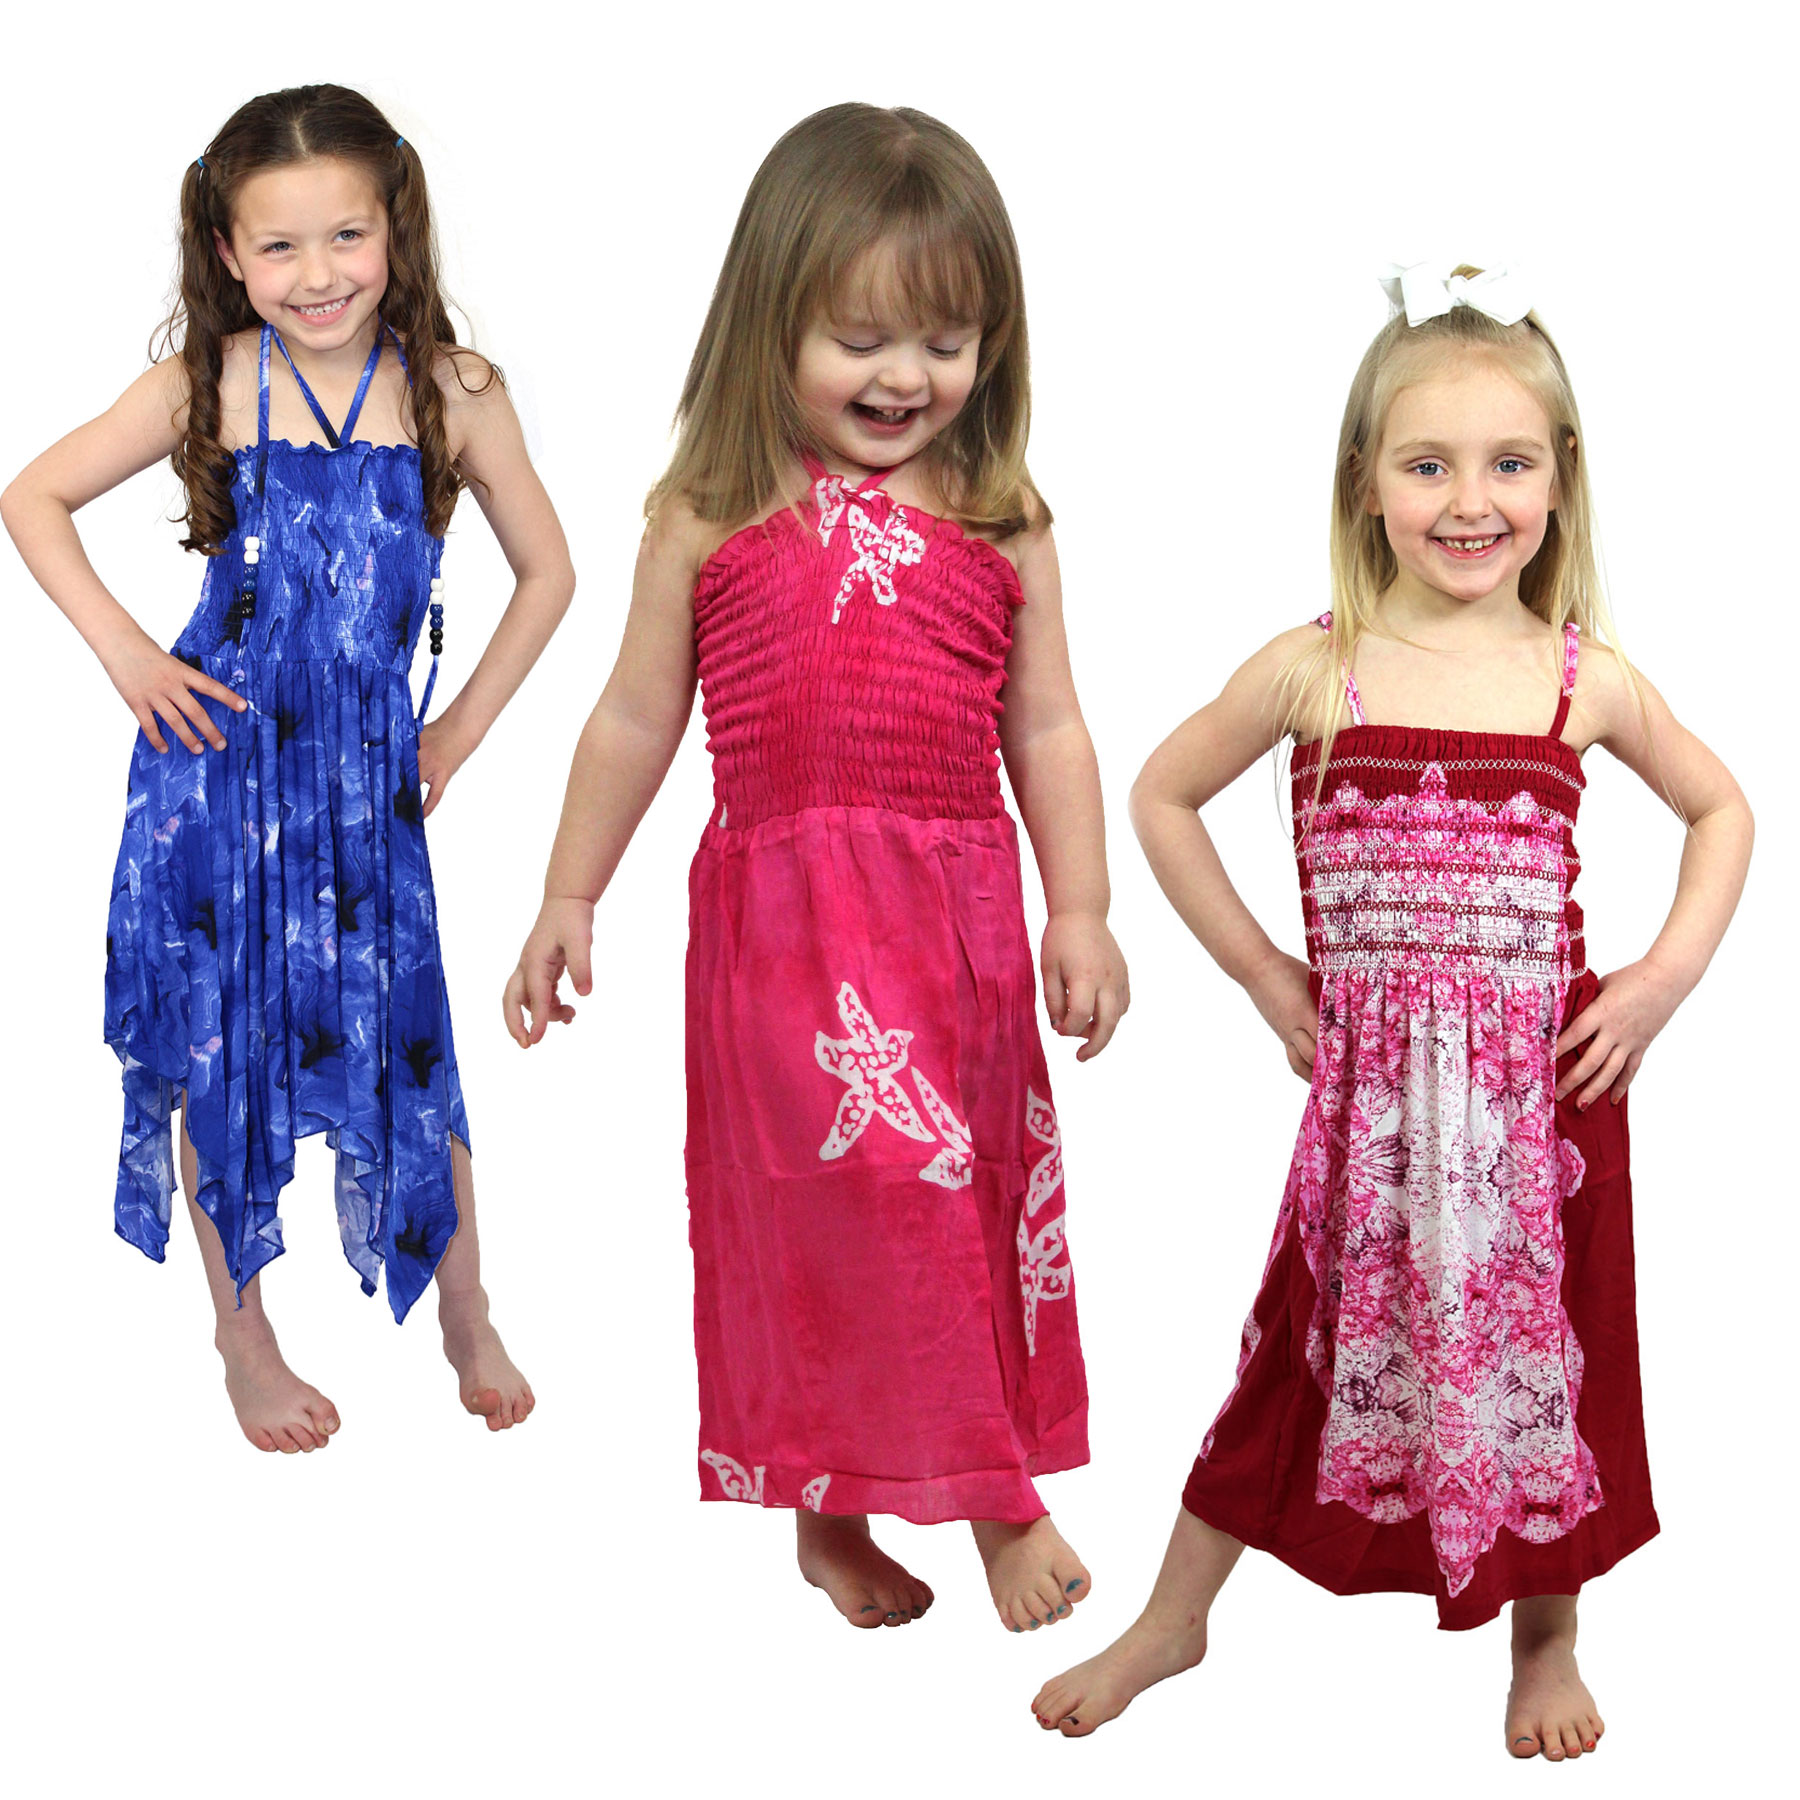 Dresses - Kids Size